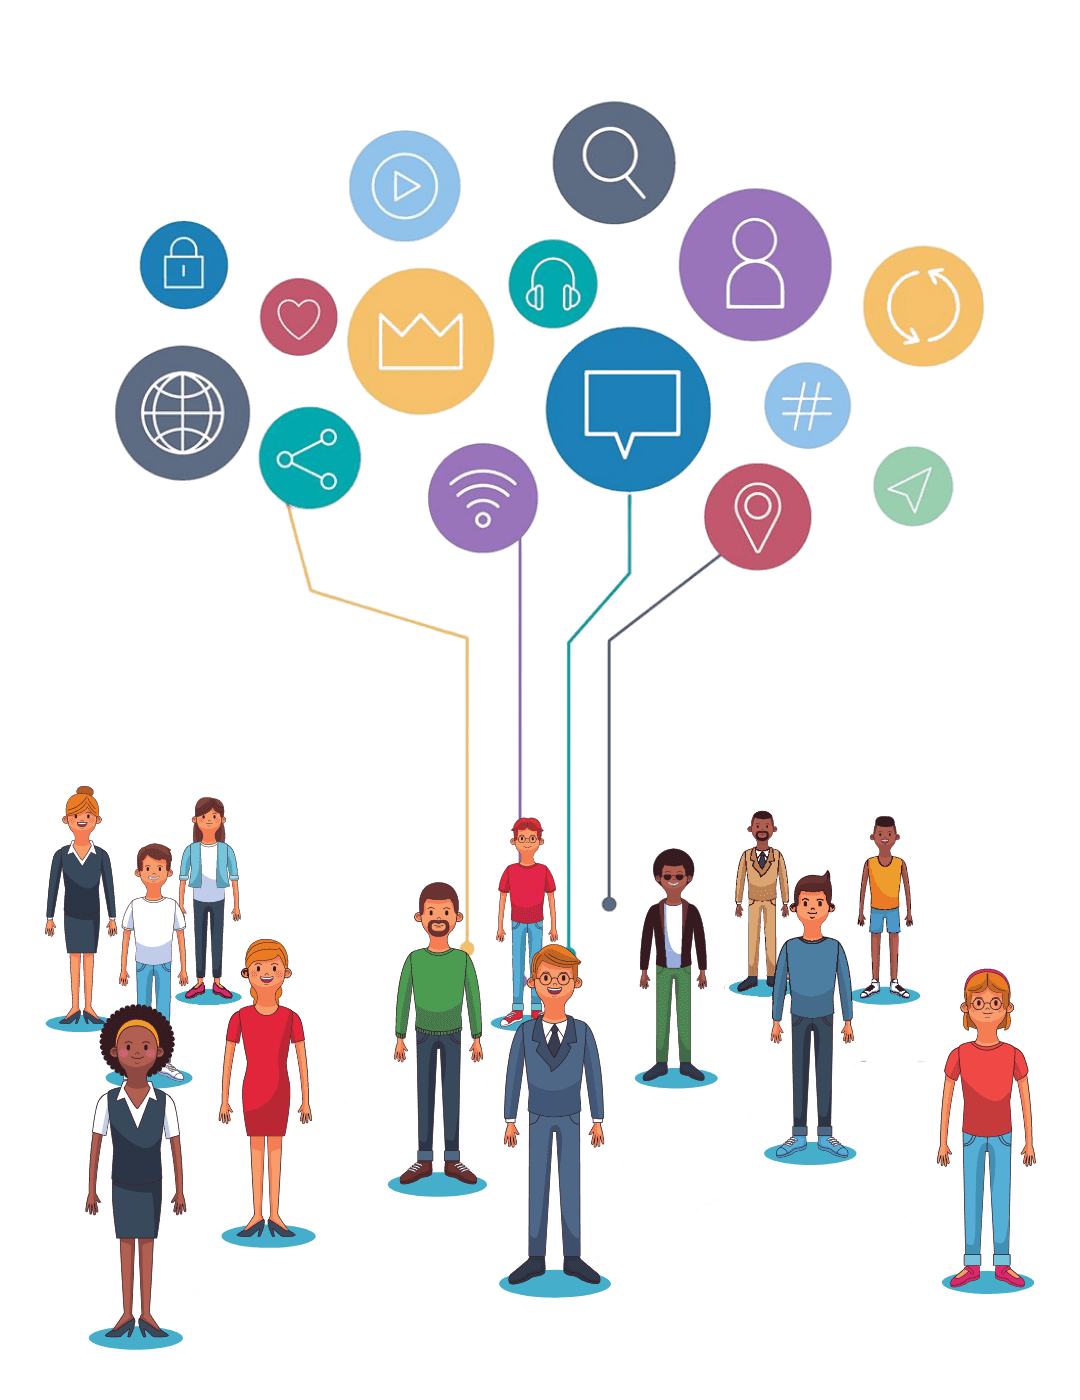 Illustration of people connected to icons and lines and a transparent background